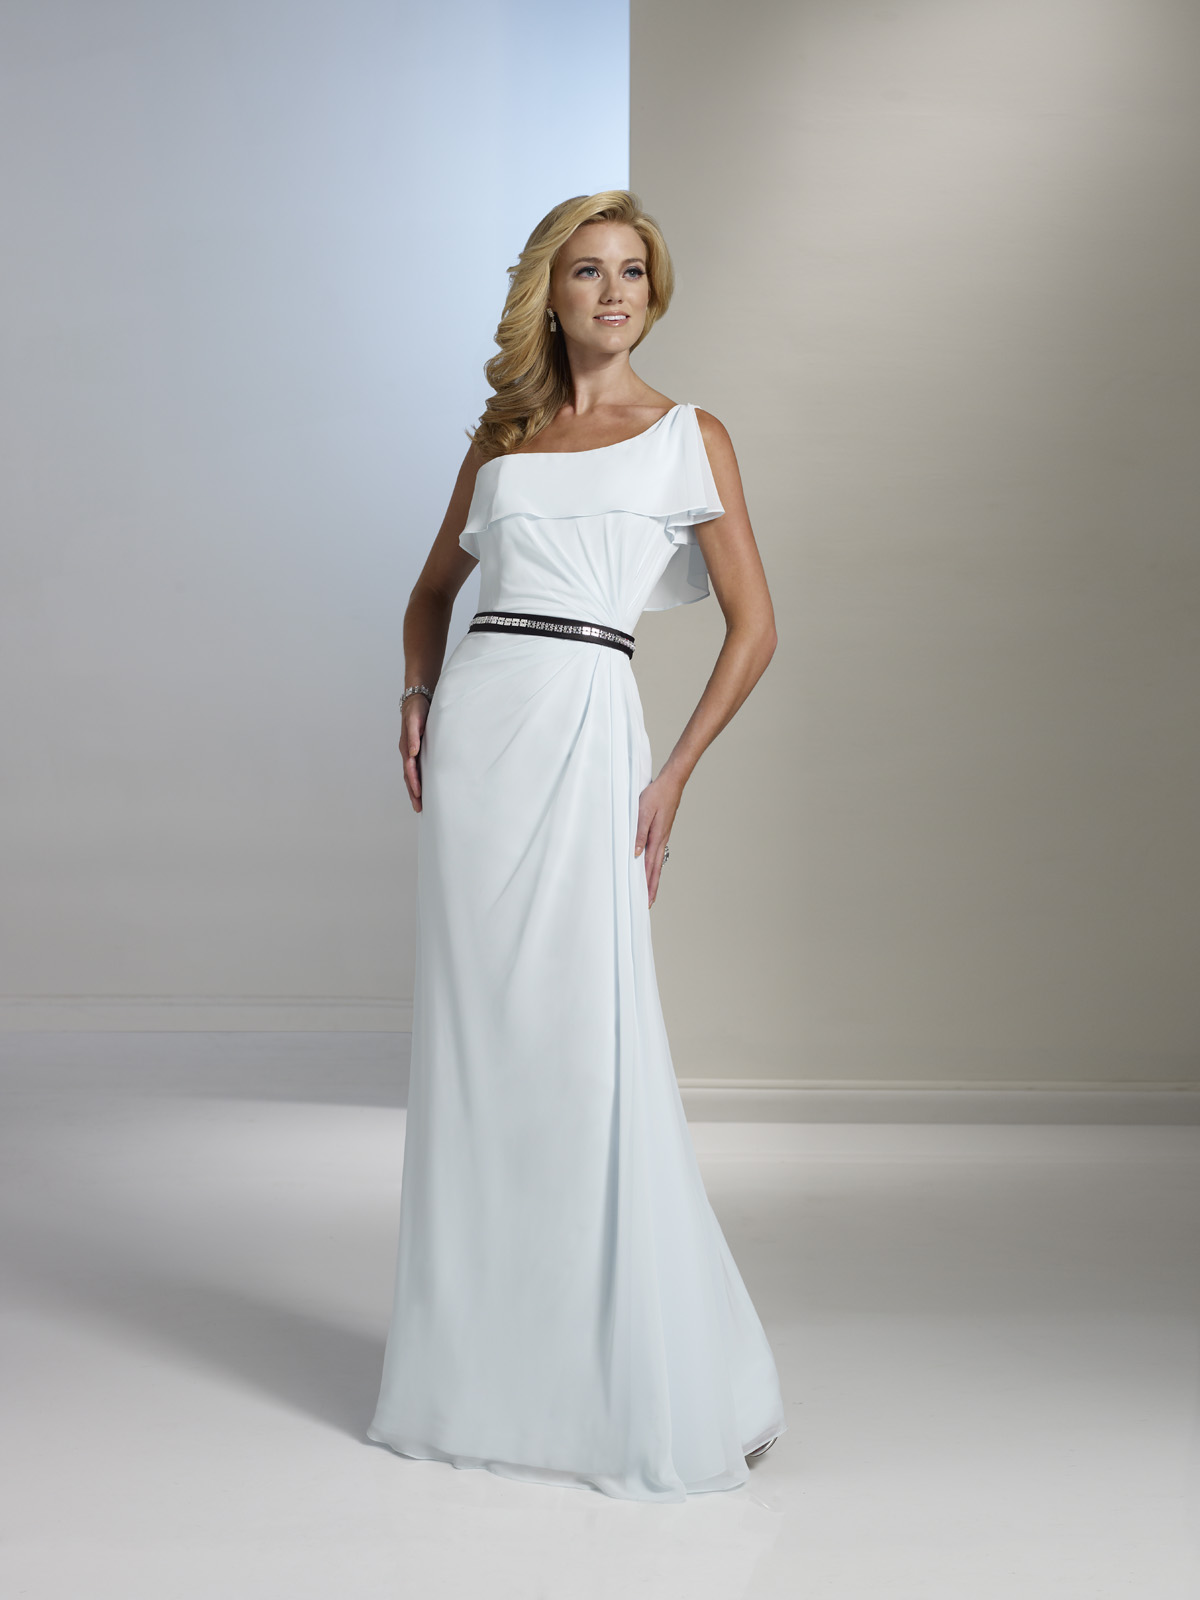 Chic-mother-of-the-bride-dresses-wedding-fashion-dos-and-donts-mon-cheri-3.original